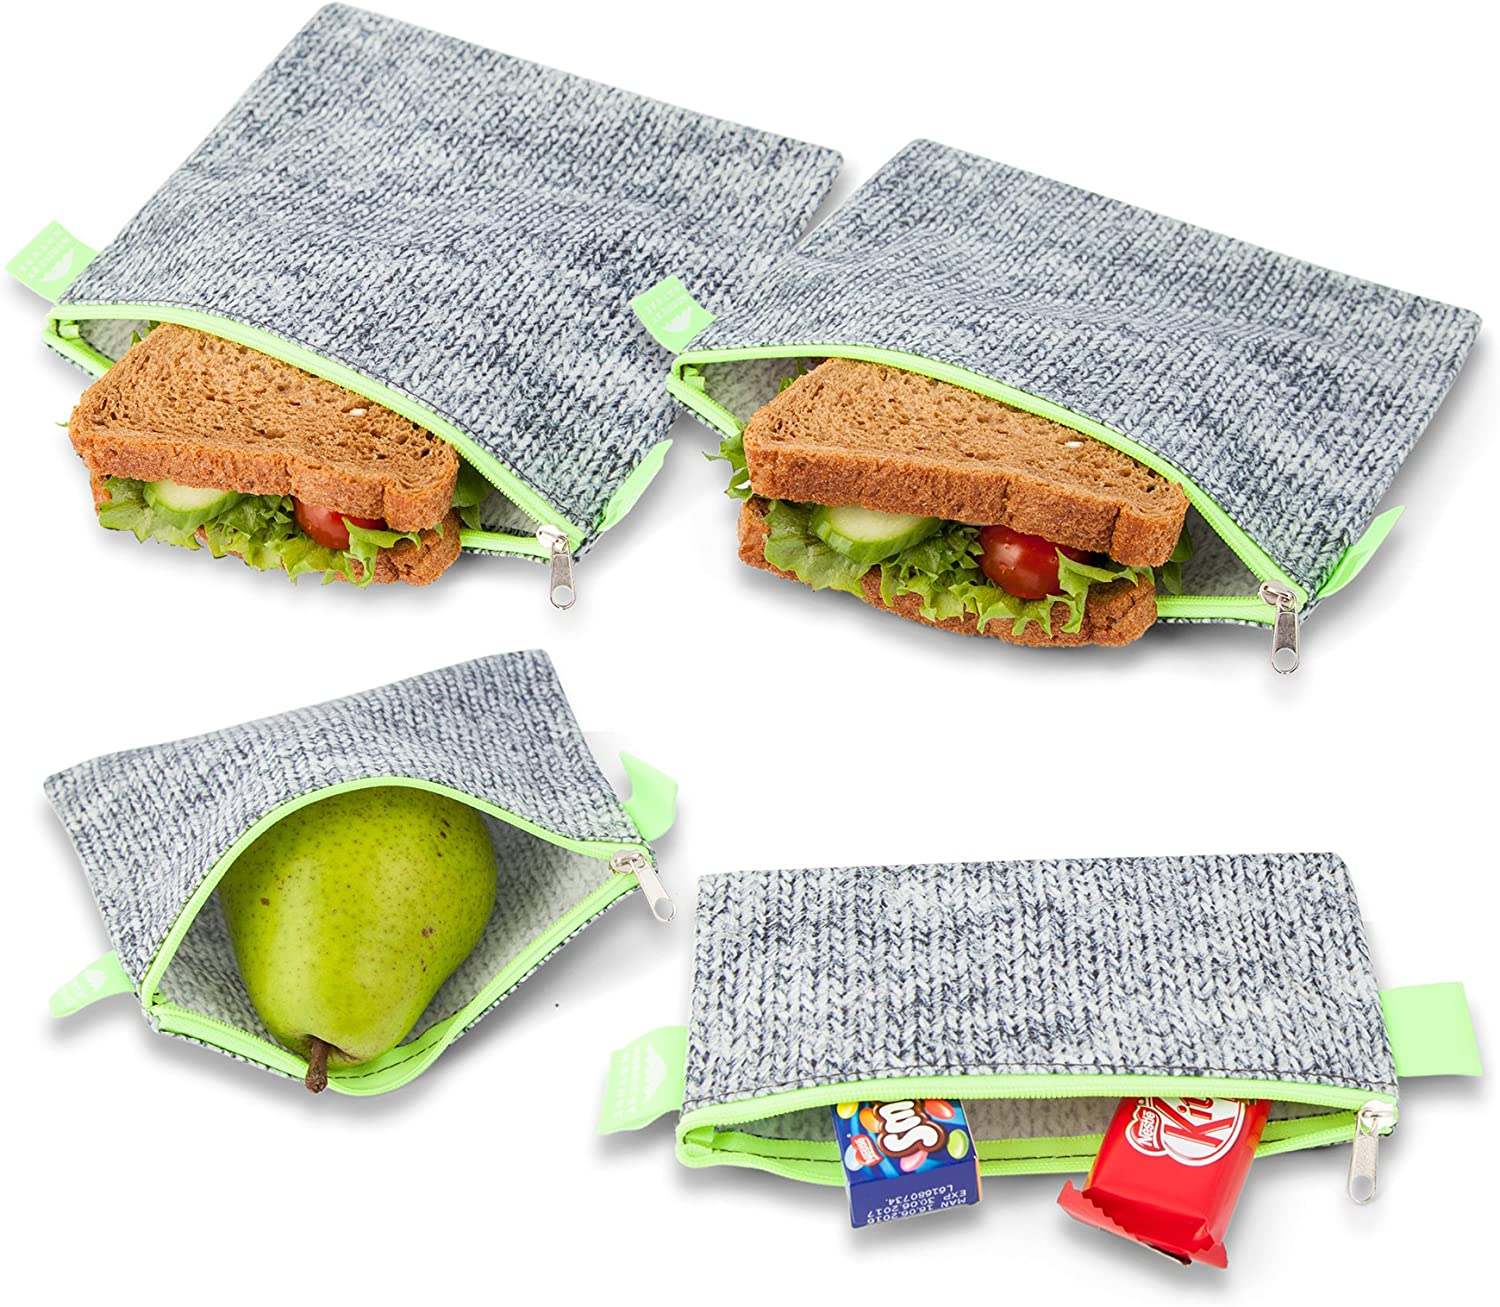 Nordic By Nature 4 Pack - Reusable Sandwich Bags Dishwasher Safe BPA Free - Durable Washable Quick Dry Cloth Baggies -Reusable Snack Bags for Kids School Lunches - Easy Open Zipper (Grey/Neon Green)